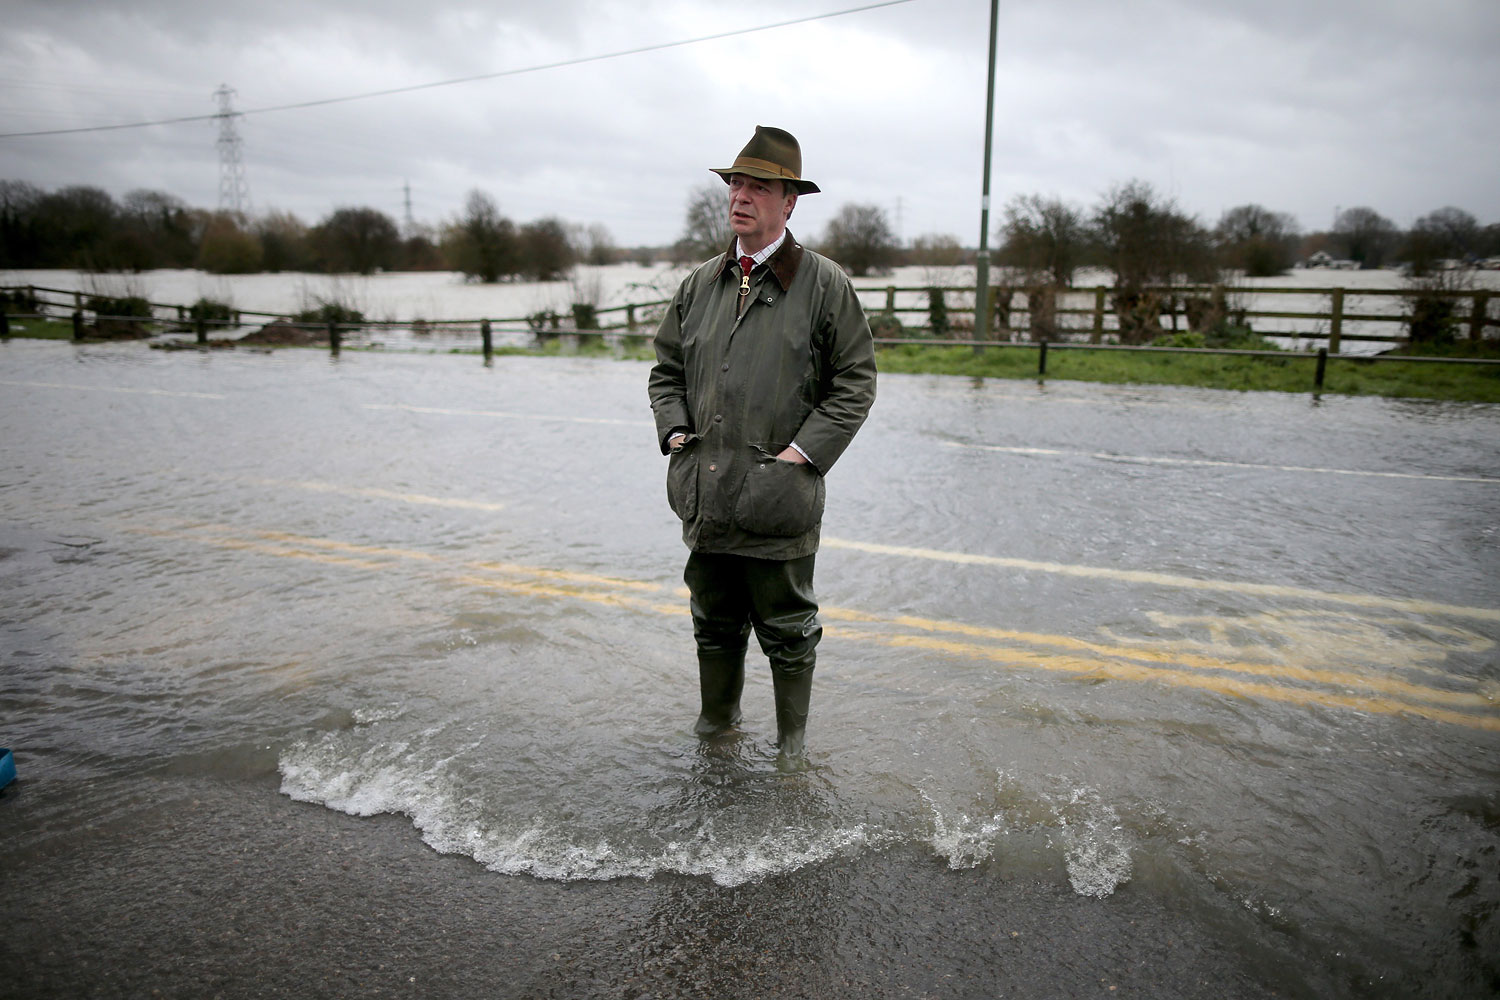 Leader of UKIP Nigel Farage tours flooded properties  and roads as he visits Chertsey on Feb. 11, 2014 in Chertsey, United Kingdom.